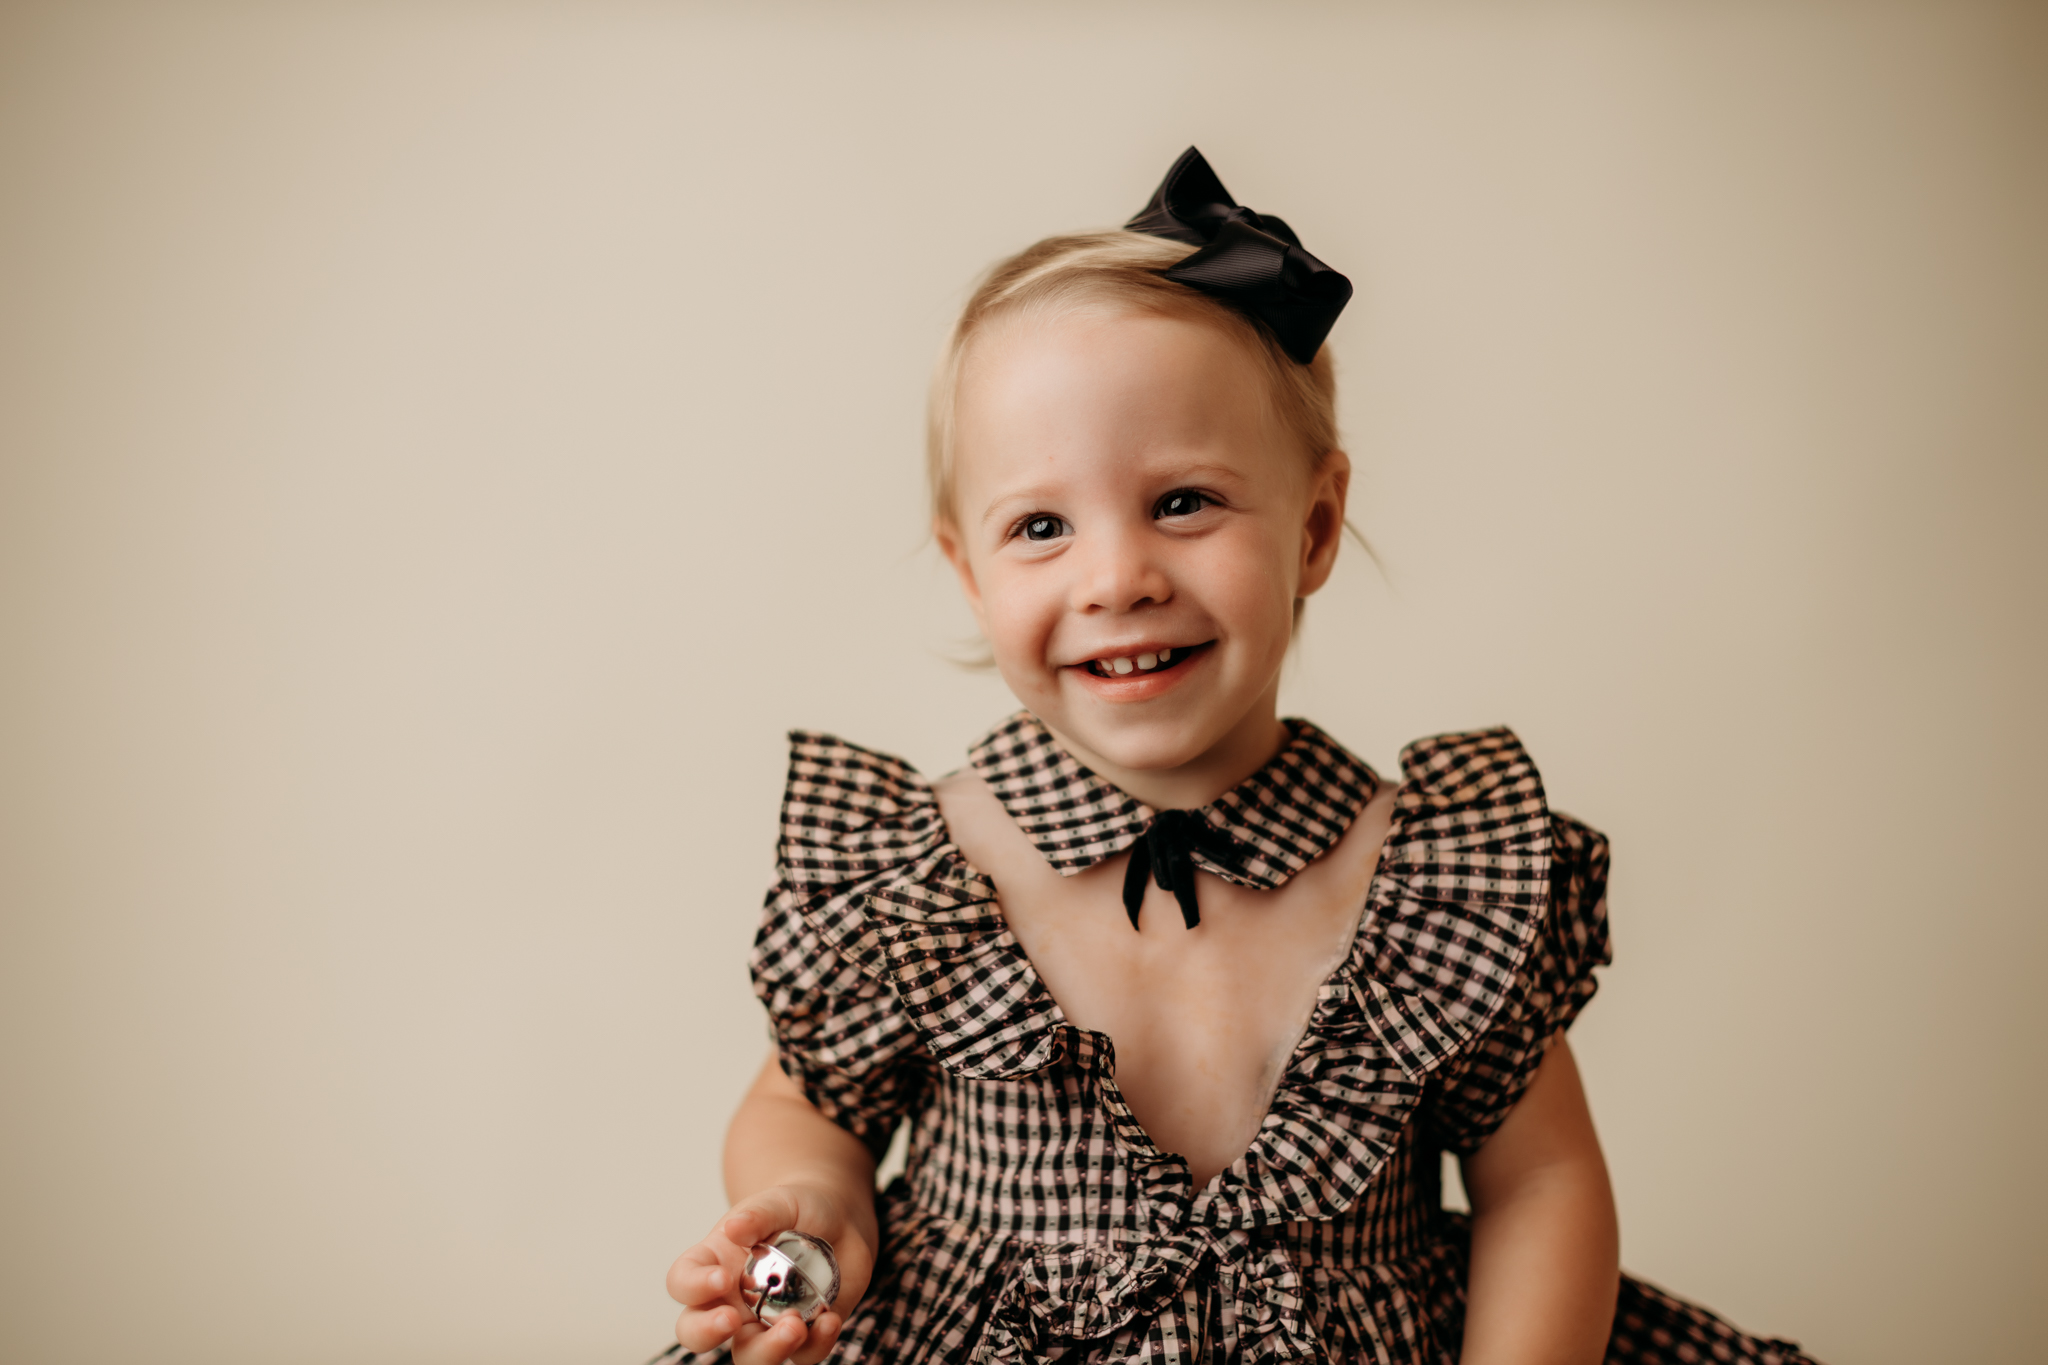 nwa childrens photography in studio with child smiling at camera against a cream backdrop and wearing a family heirloom dress